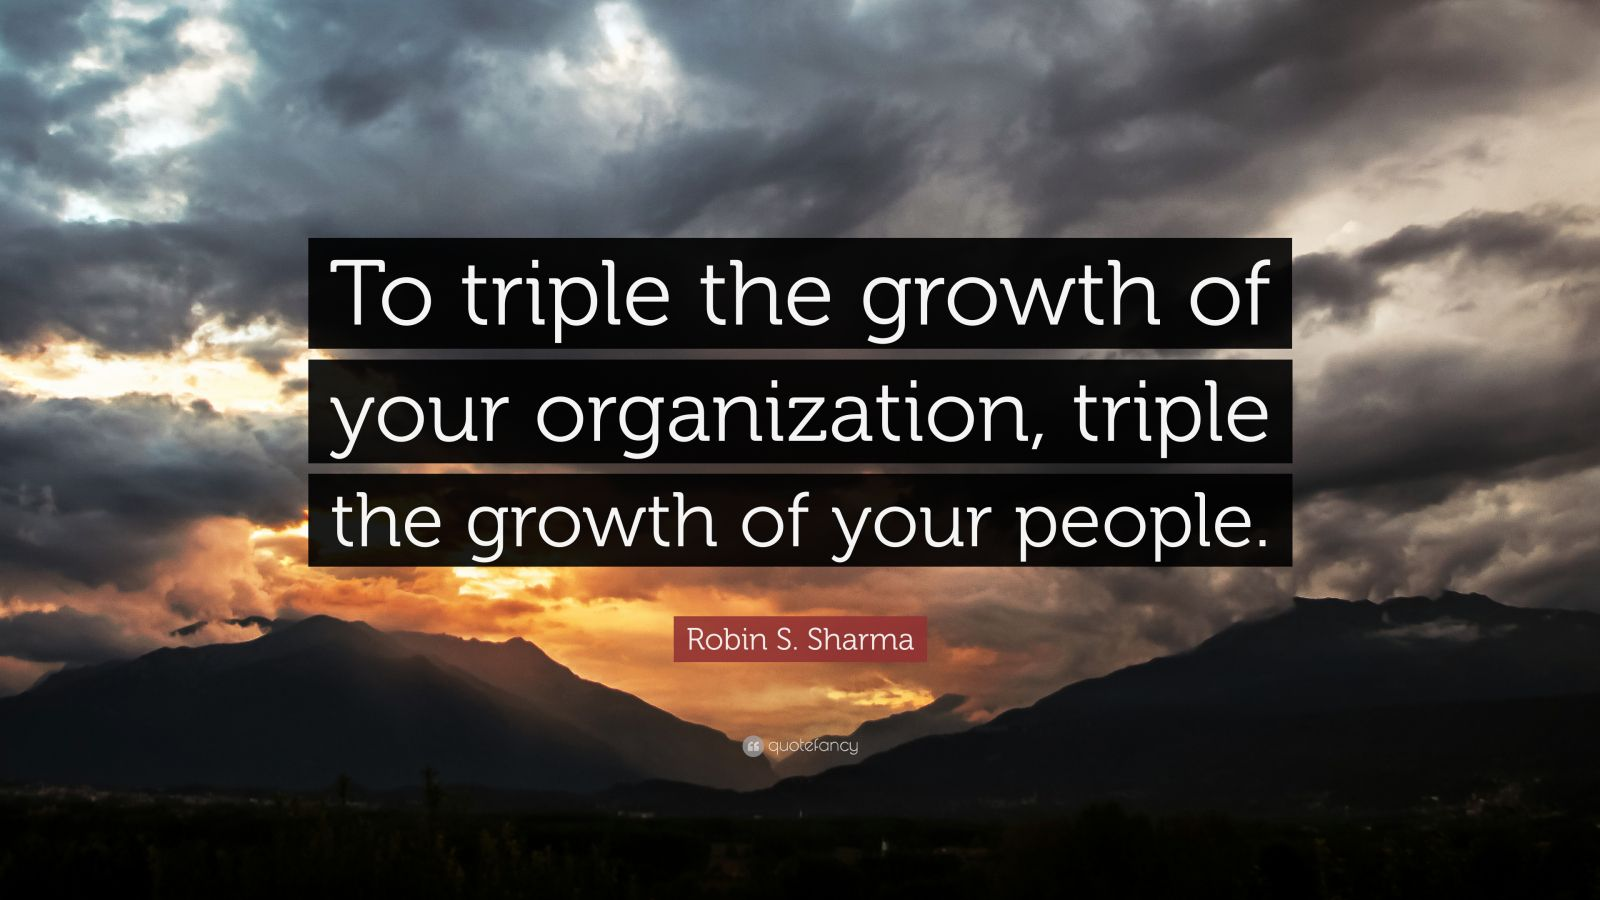 """Robin S. Sharma Quote: """"To triple the growth of your organization, triple the growth of your people."""""""